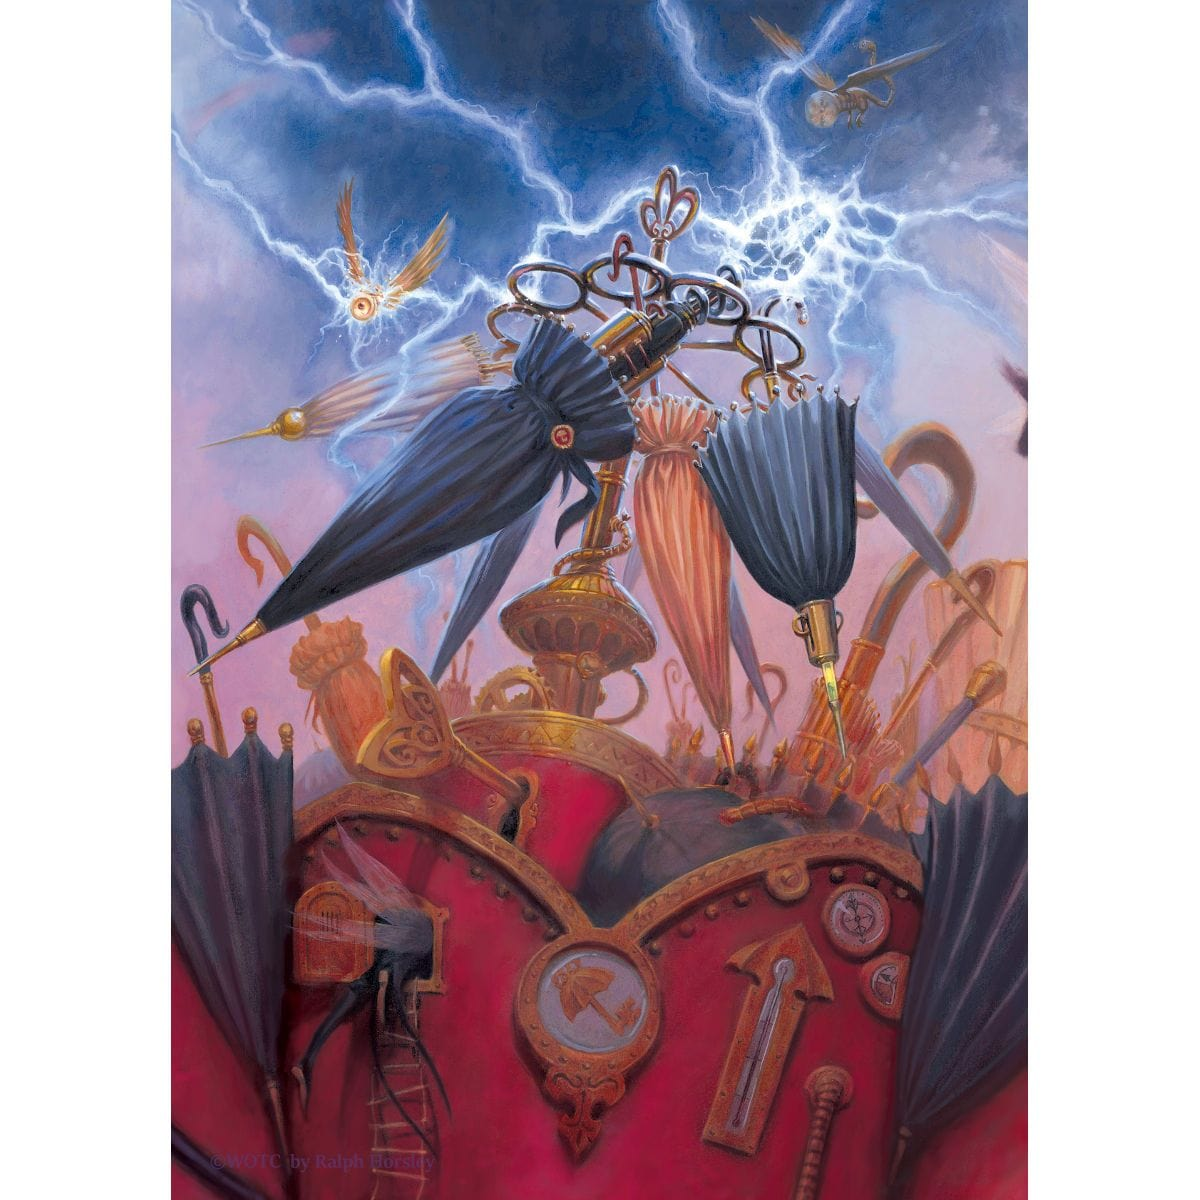 Twiddlestick Charger Print - Print - Original Magic Art - Accessories for Magic the Gathering and other card games